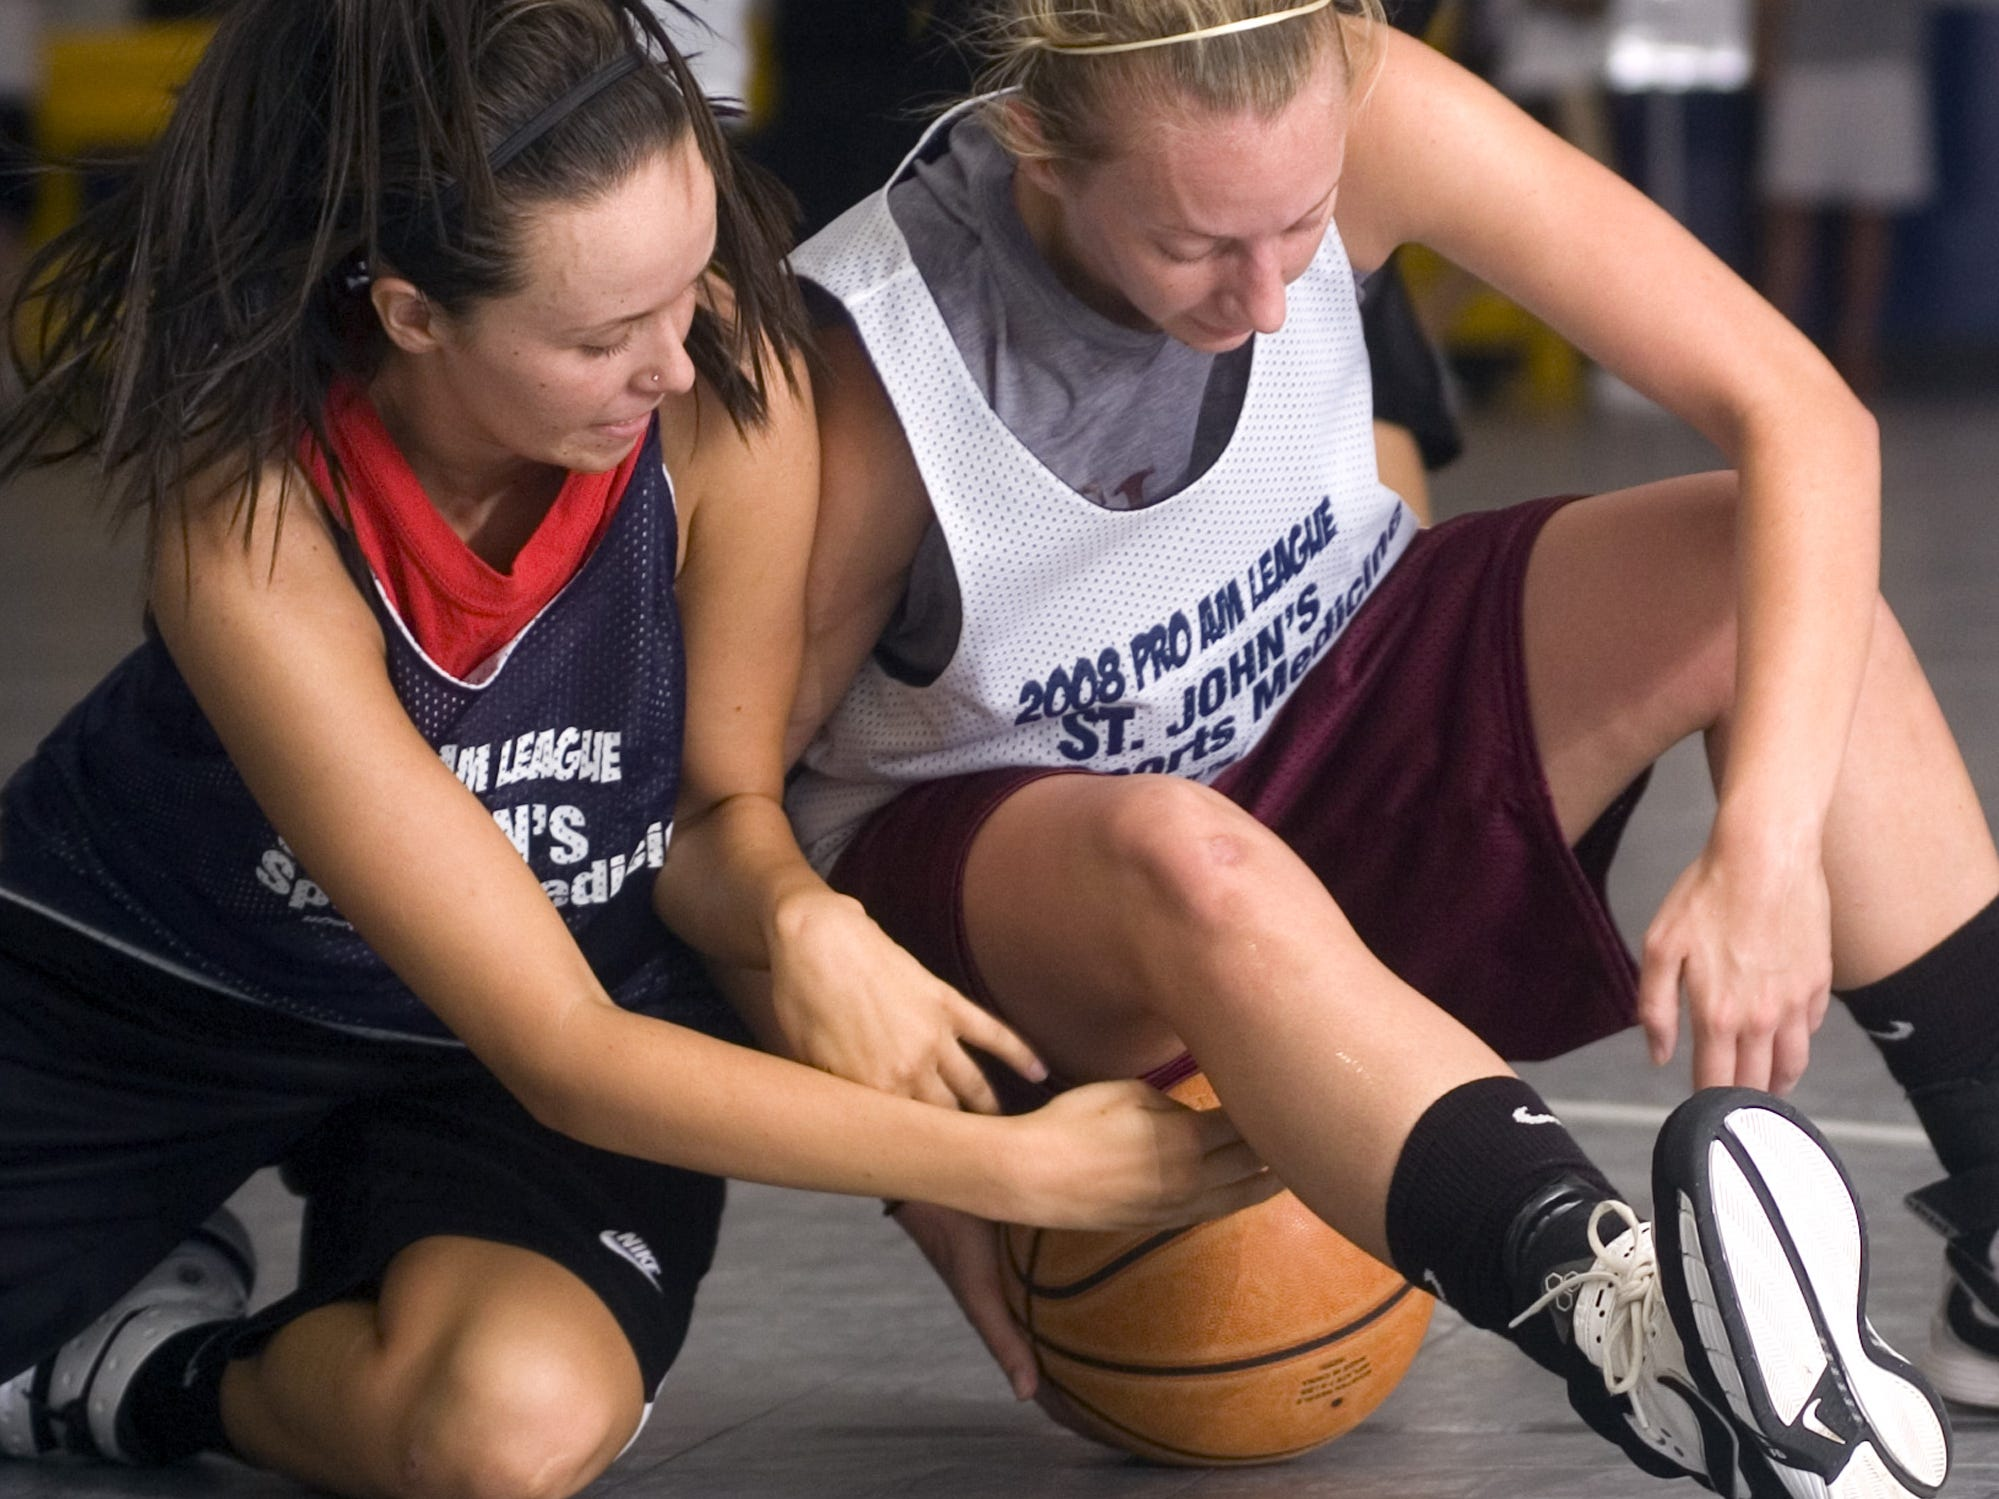 Lady Crusaders guard Kelsie Hargus, right, and Bank of Bolivar guard Jessica Pickett, left, fall to the hardwood and right for control of the basketball during the secod half of their The Courts College Pro-Am basketball game at The Courts in Springfield, Missouri, Wednesday, July 2, 2008.